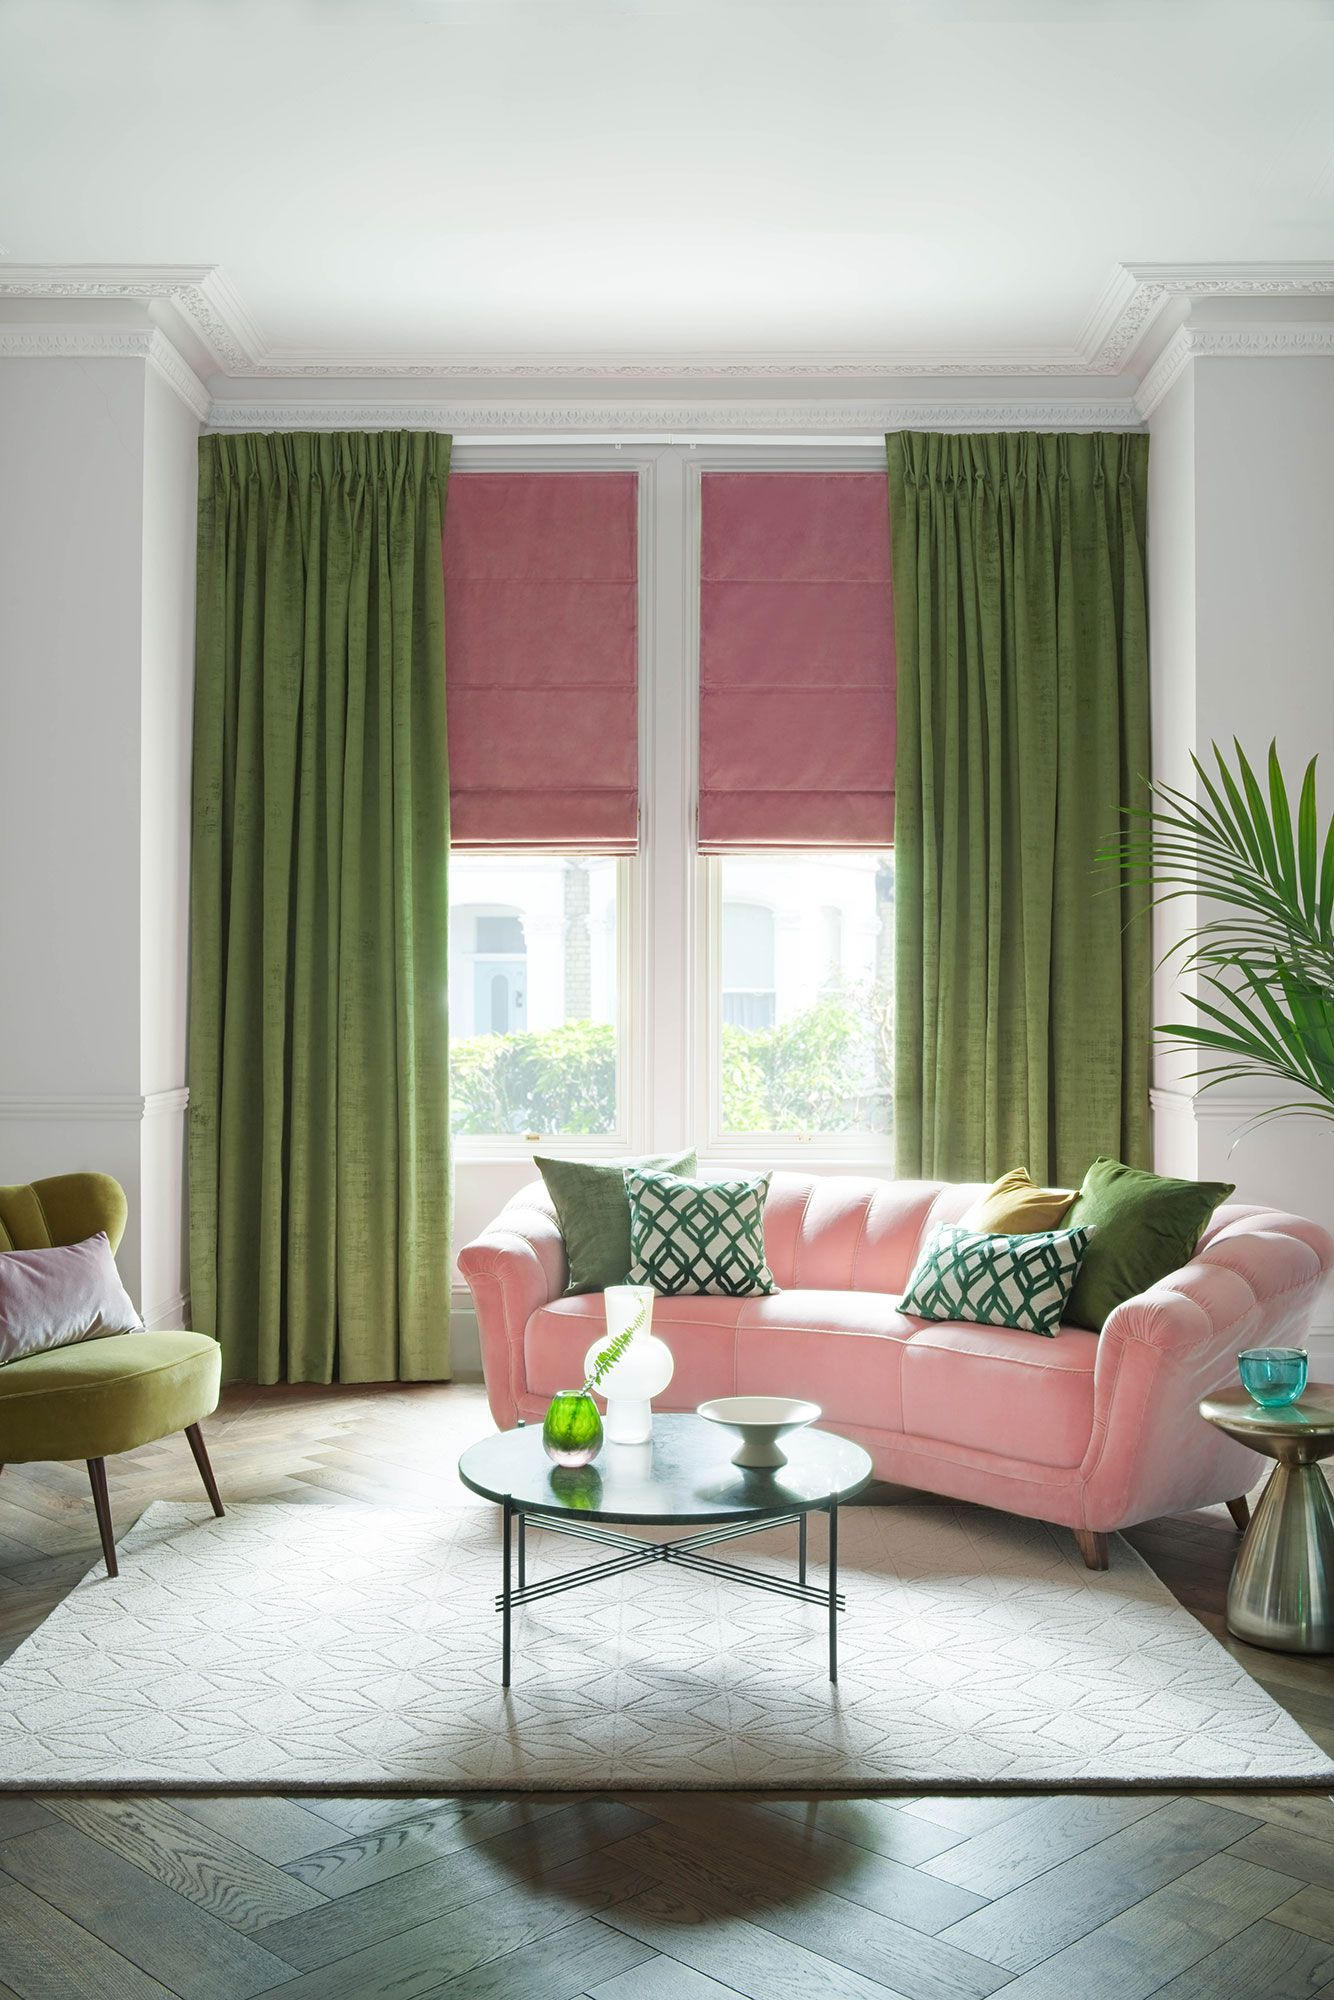 Living Room Curtains Made To Measure, Contemporary Curtains For Living Room Uk